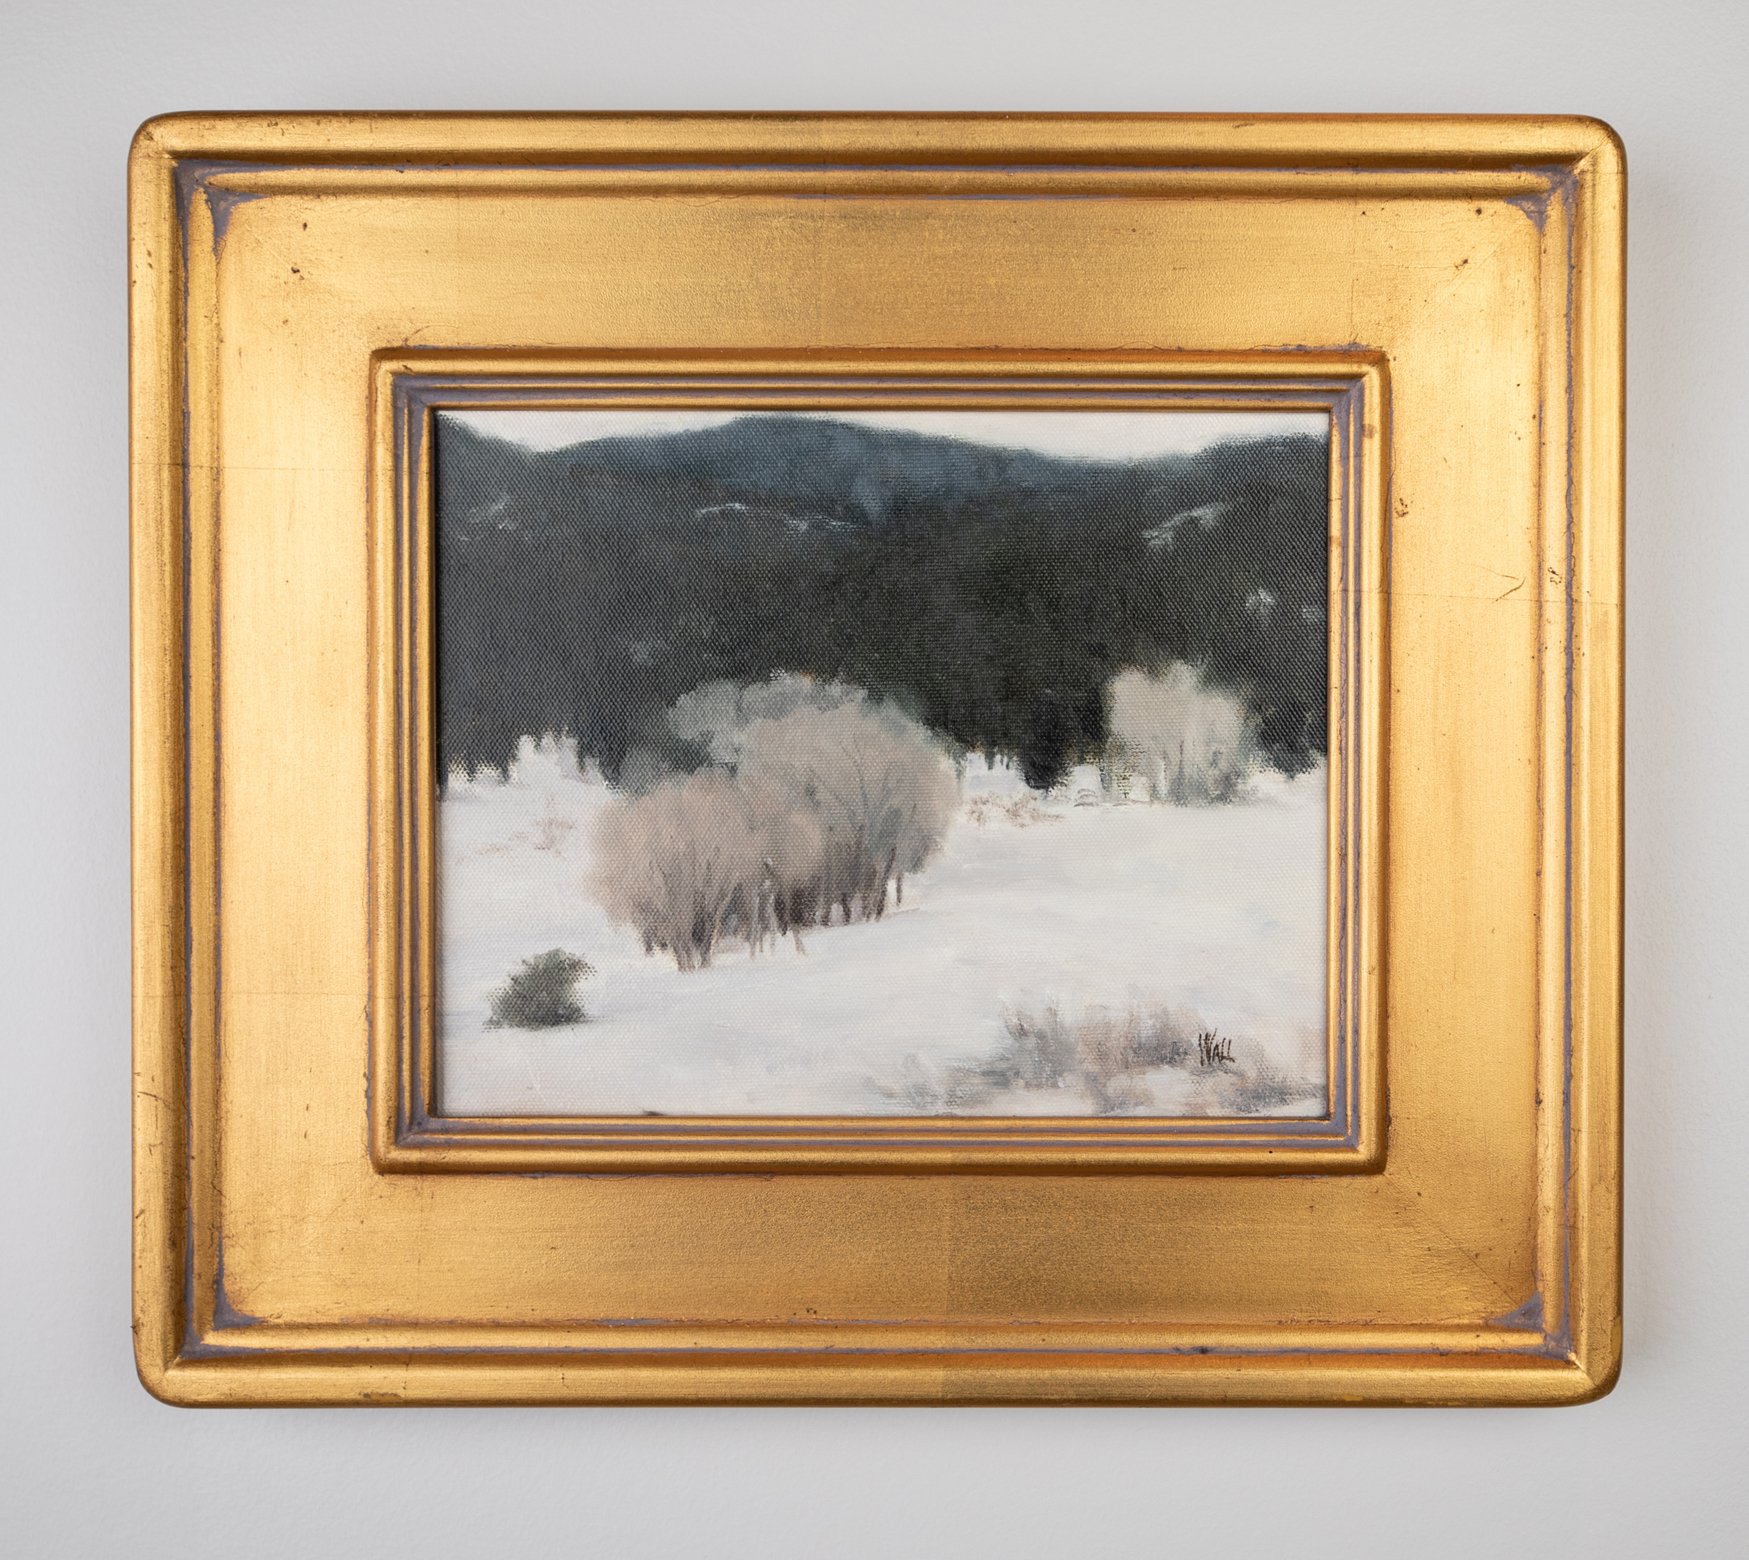 Darlene Wall, Winter's Mantle, Oil on Canvas, 8in. x 10in., ca. late 20th- early 21st century